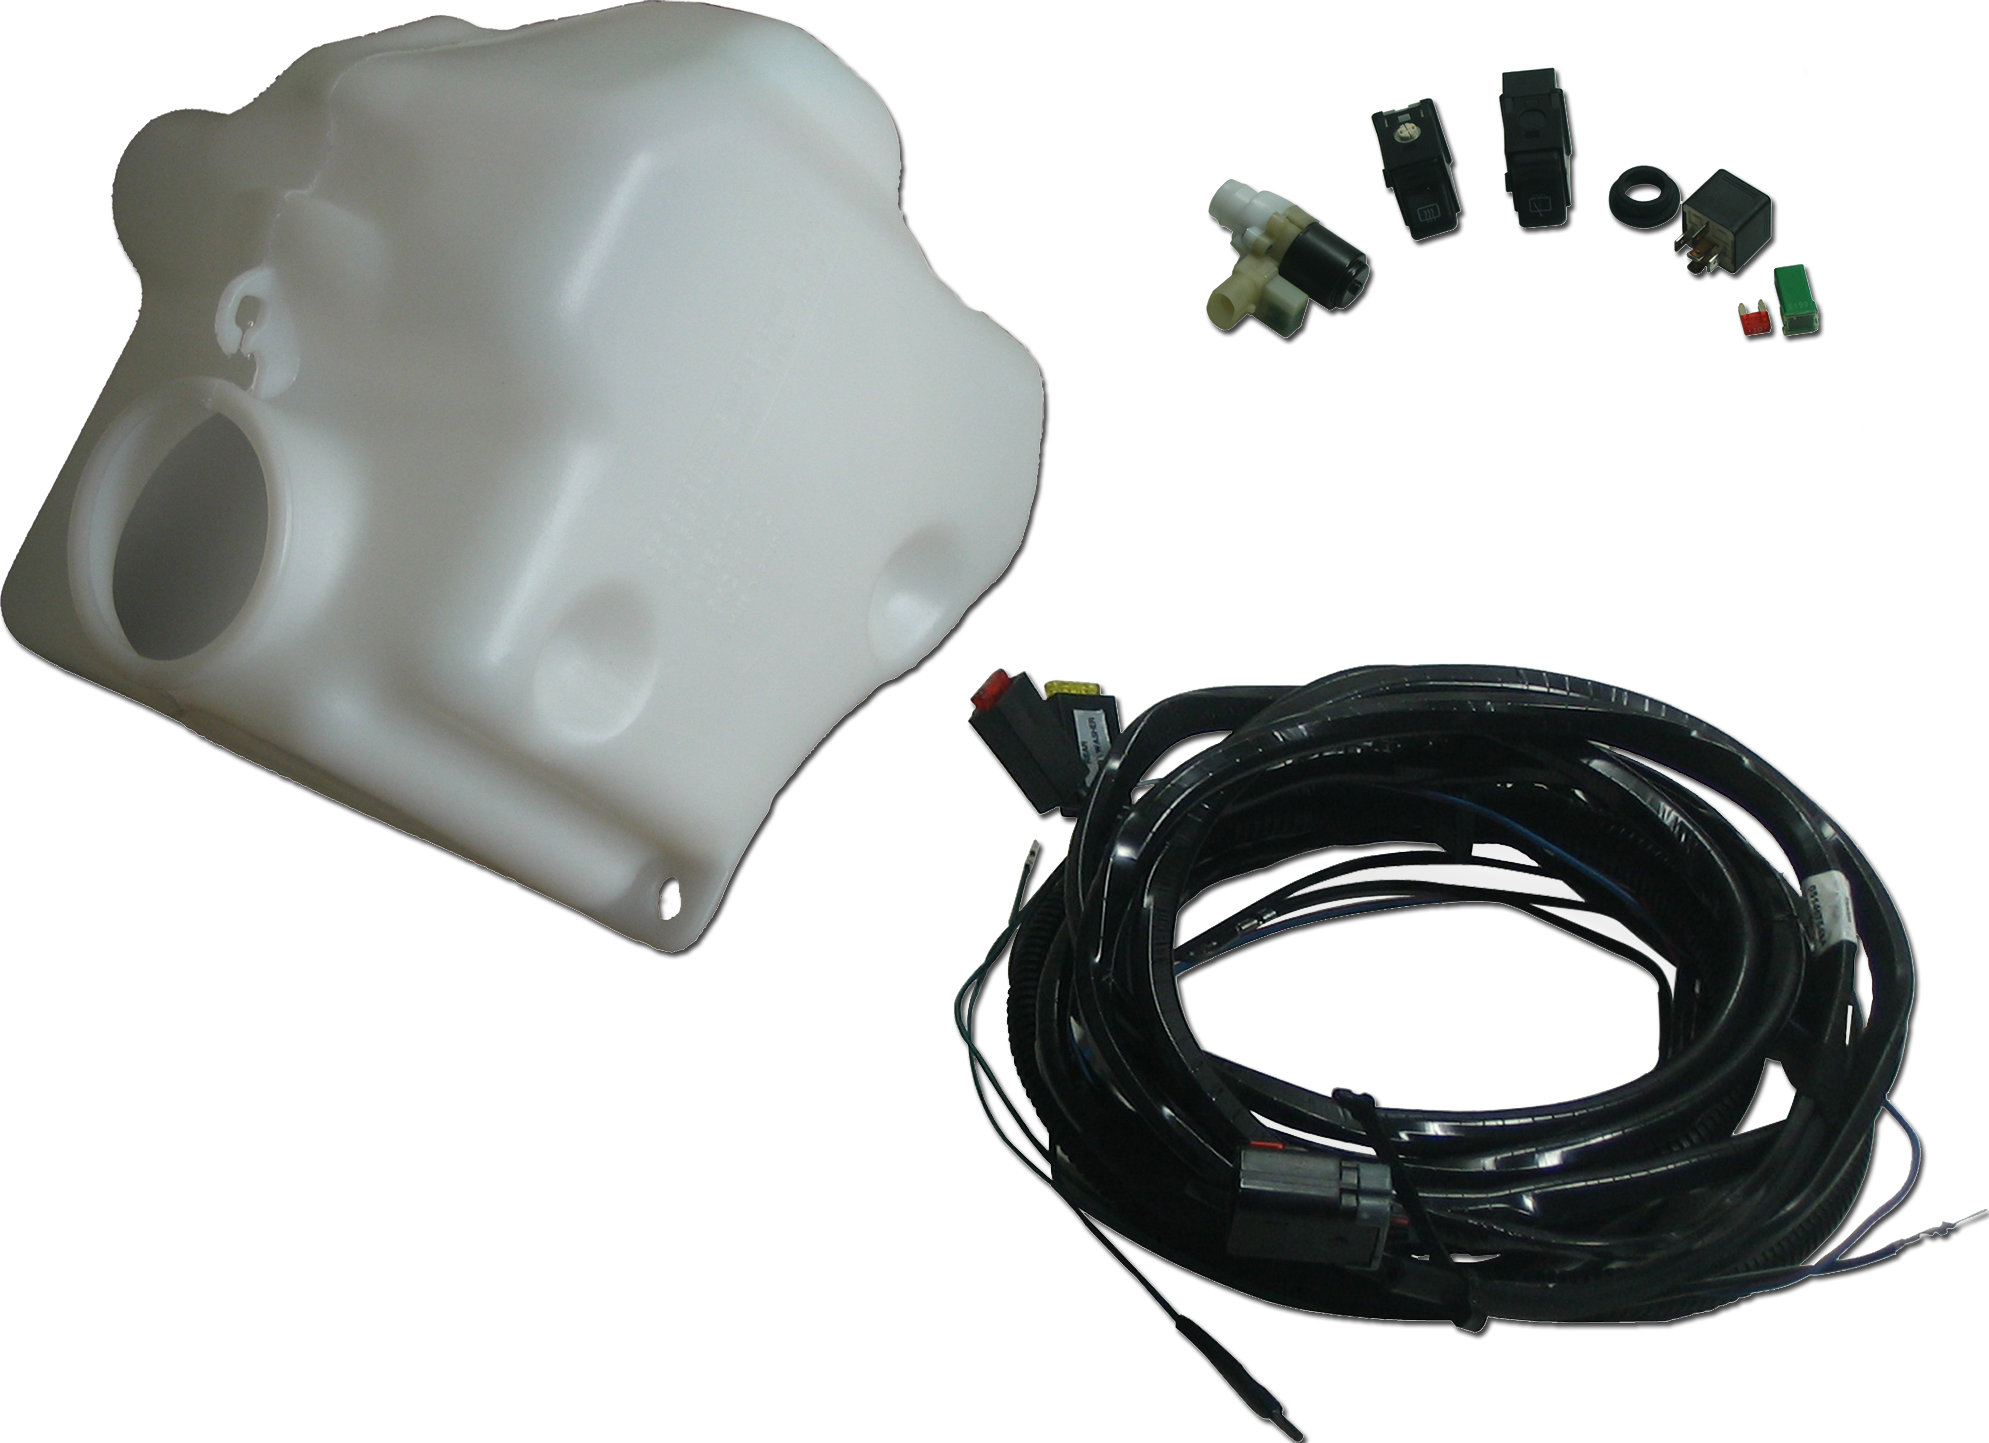 hight resolution of mopar 82208907ab hardtop wiring kit for 03 06 jeep wrangler tj description